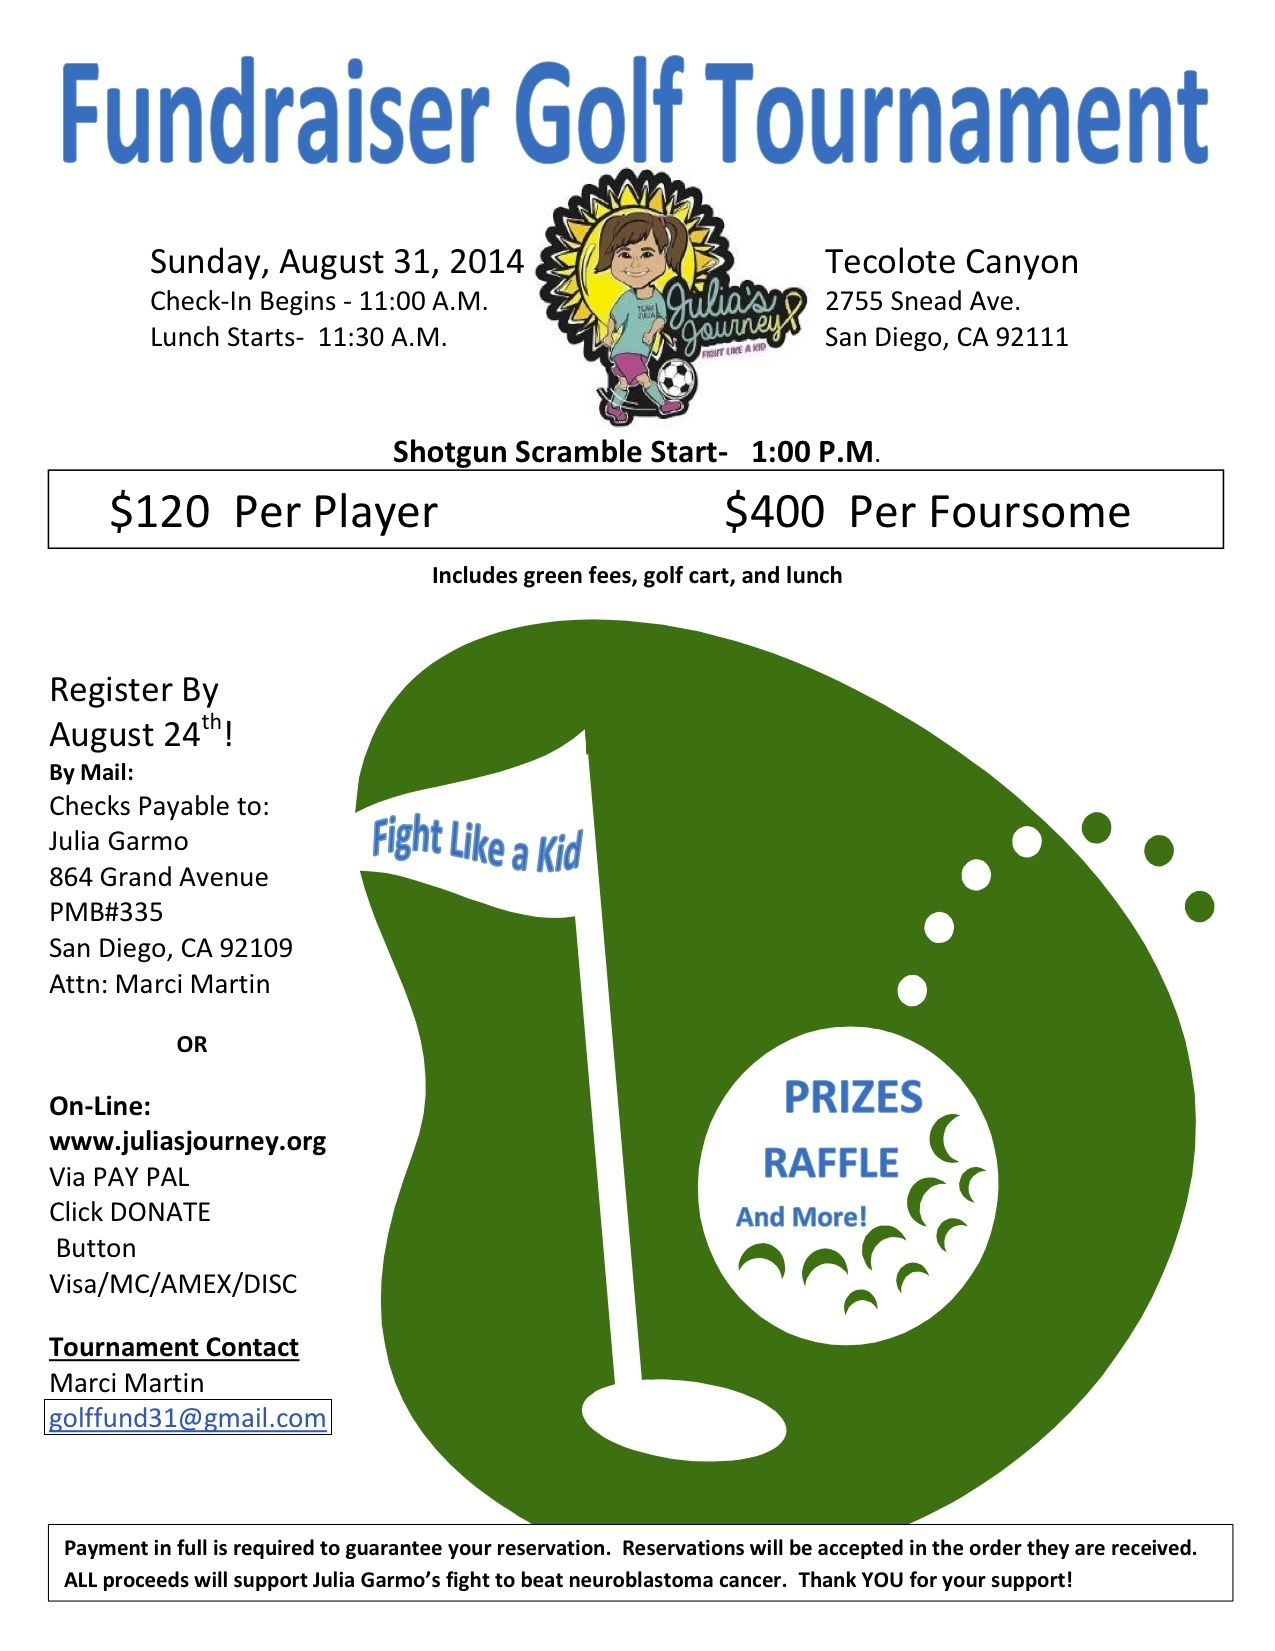 julia u0026 39 s journey golf tournament flyer 8 31 14